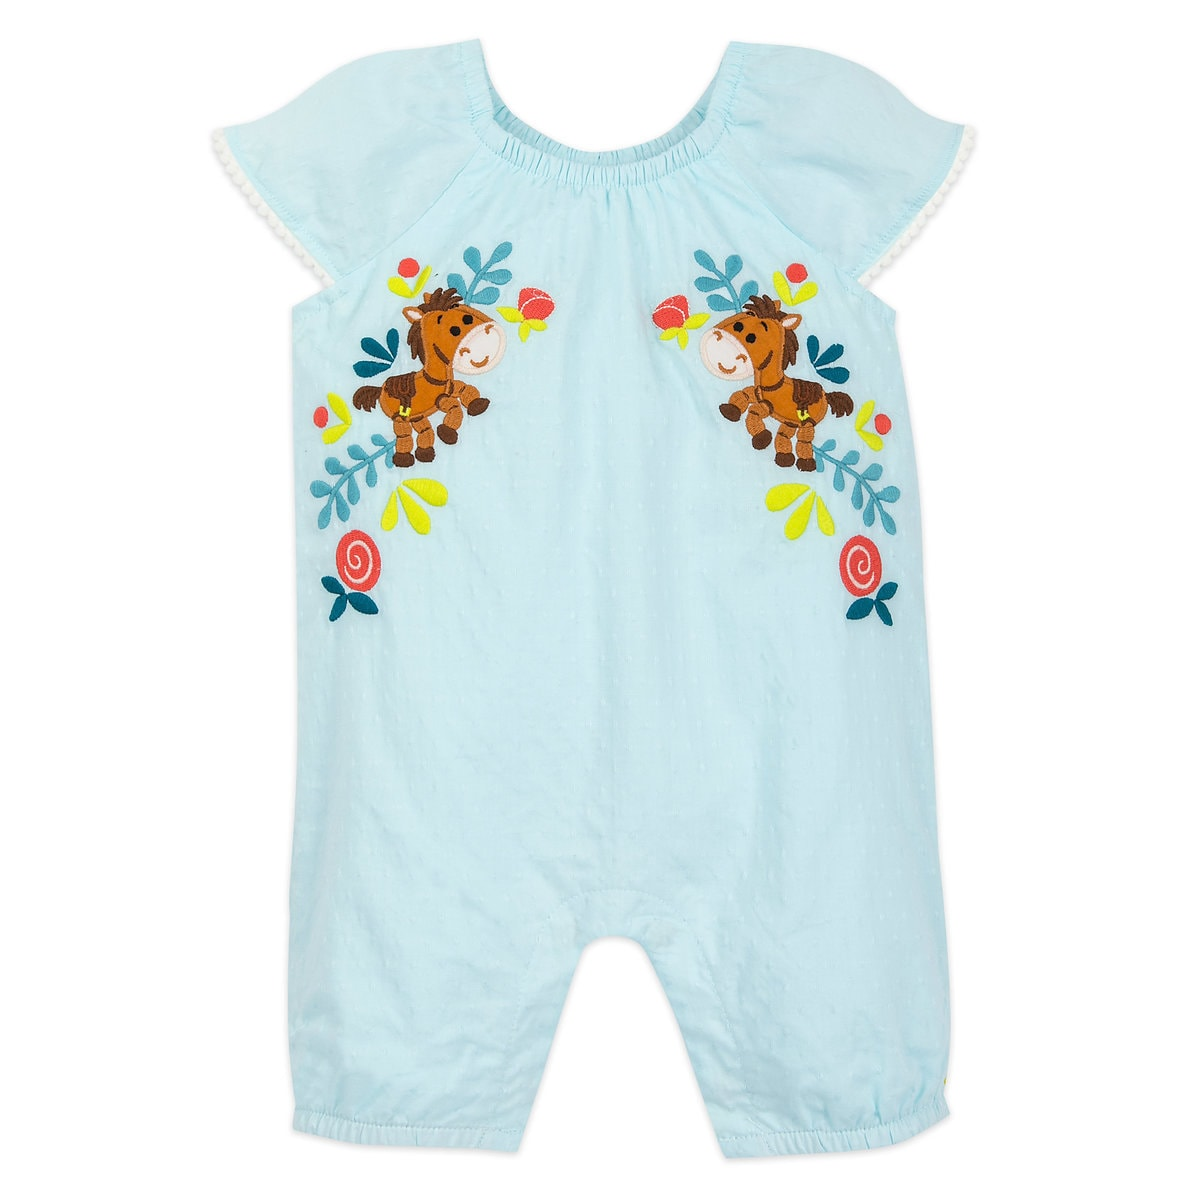 1faba5a49 Product Image of Toy Story Bubble Romper for Baby # 1